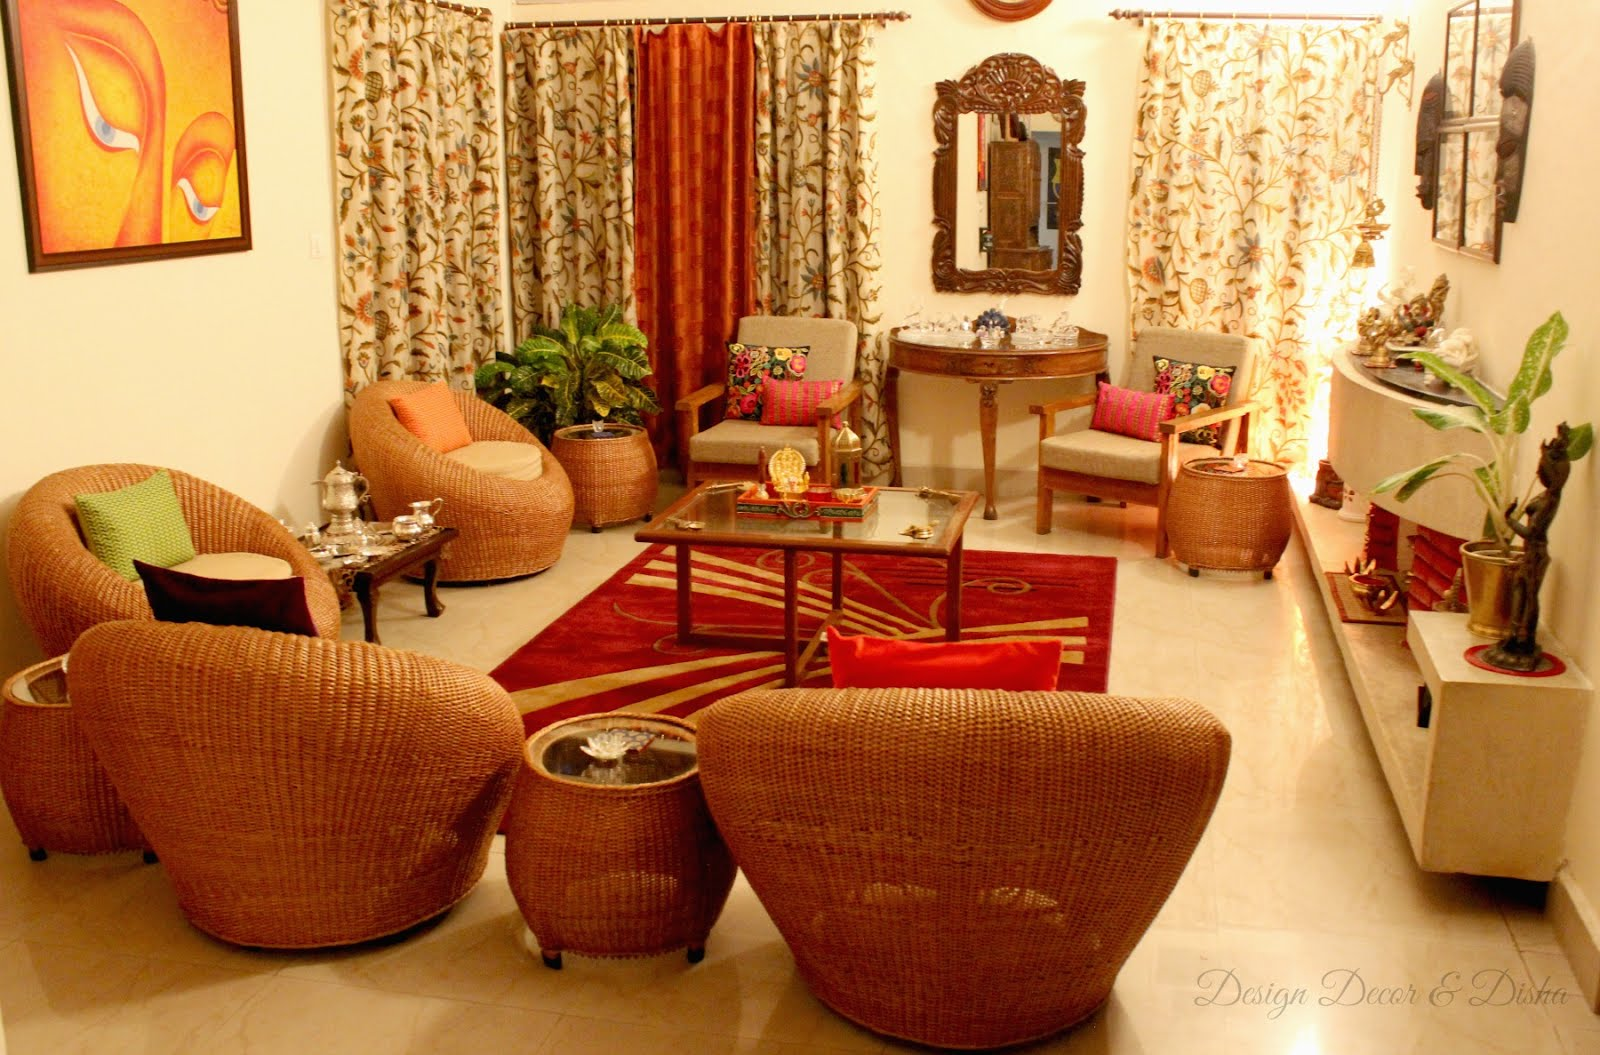 Design Decor Disha An Indian Design Decor Blog Home Tour